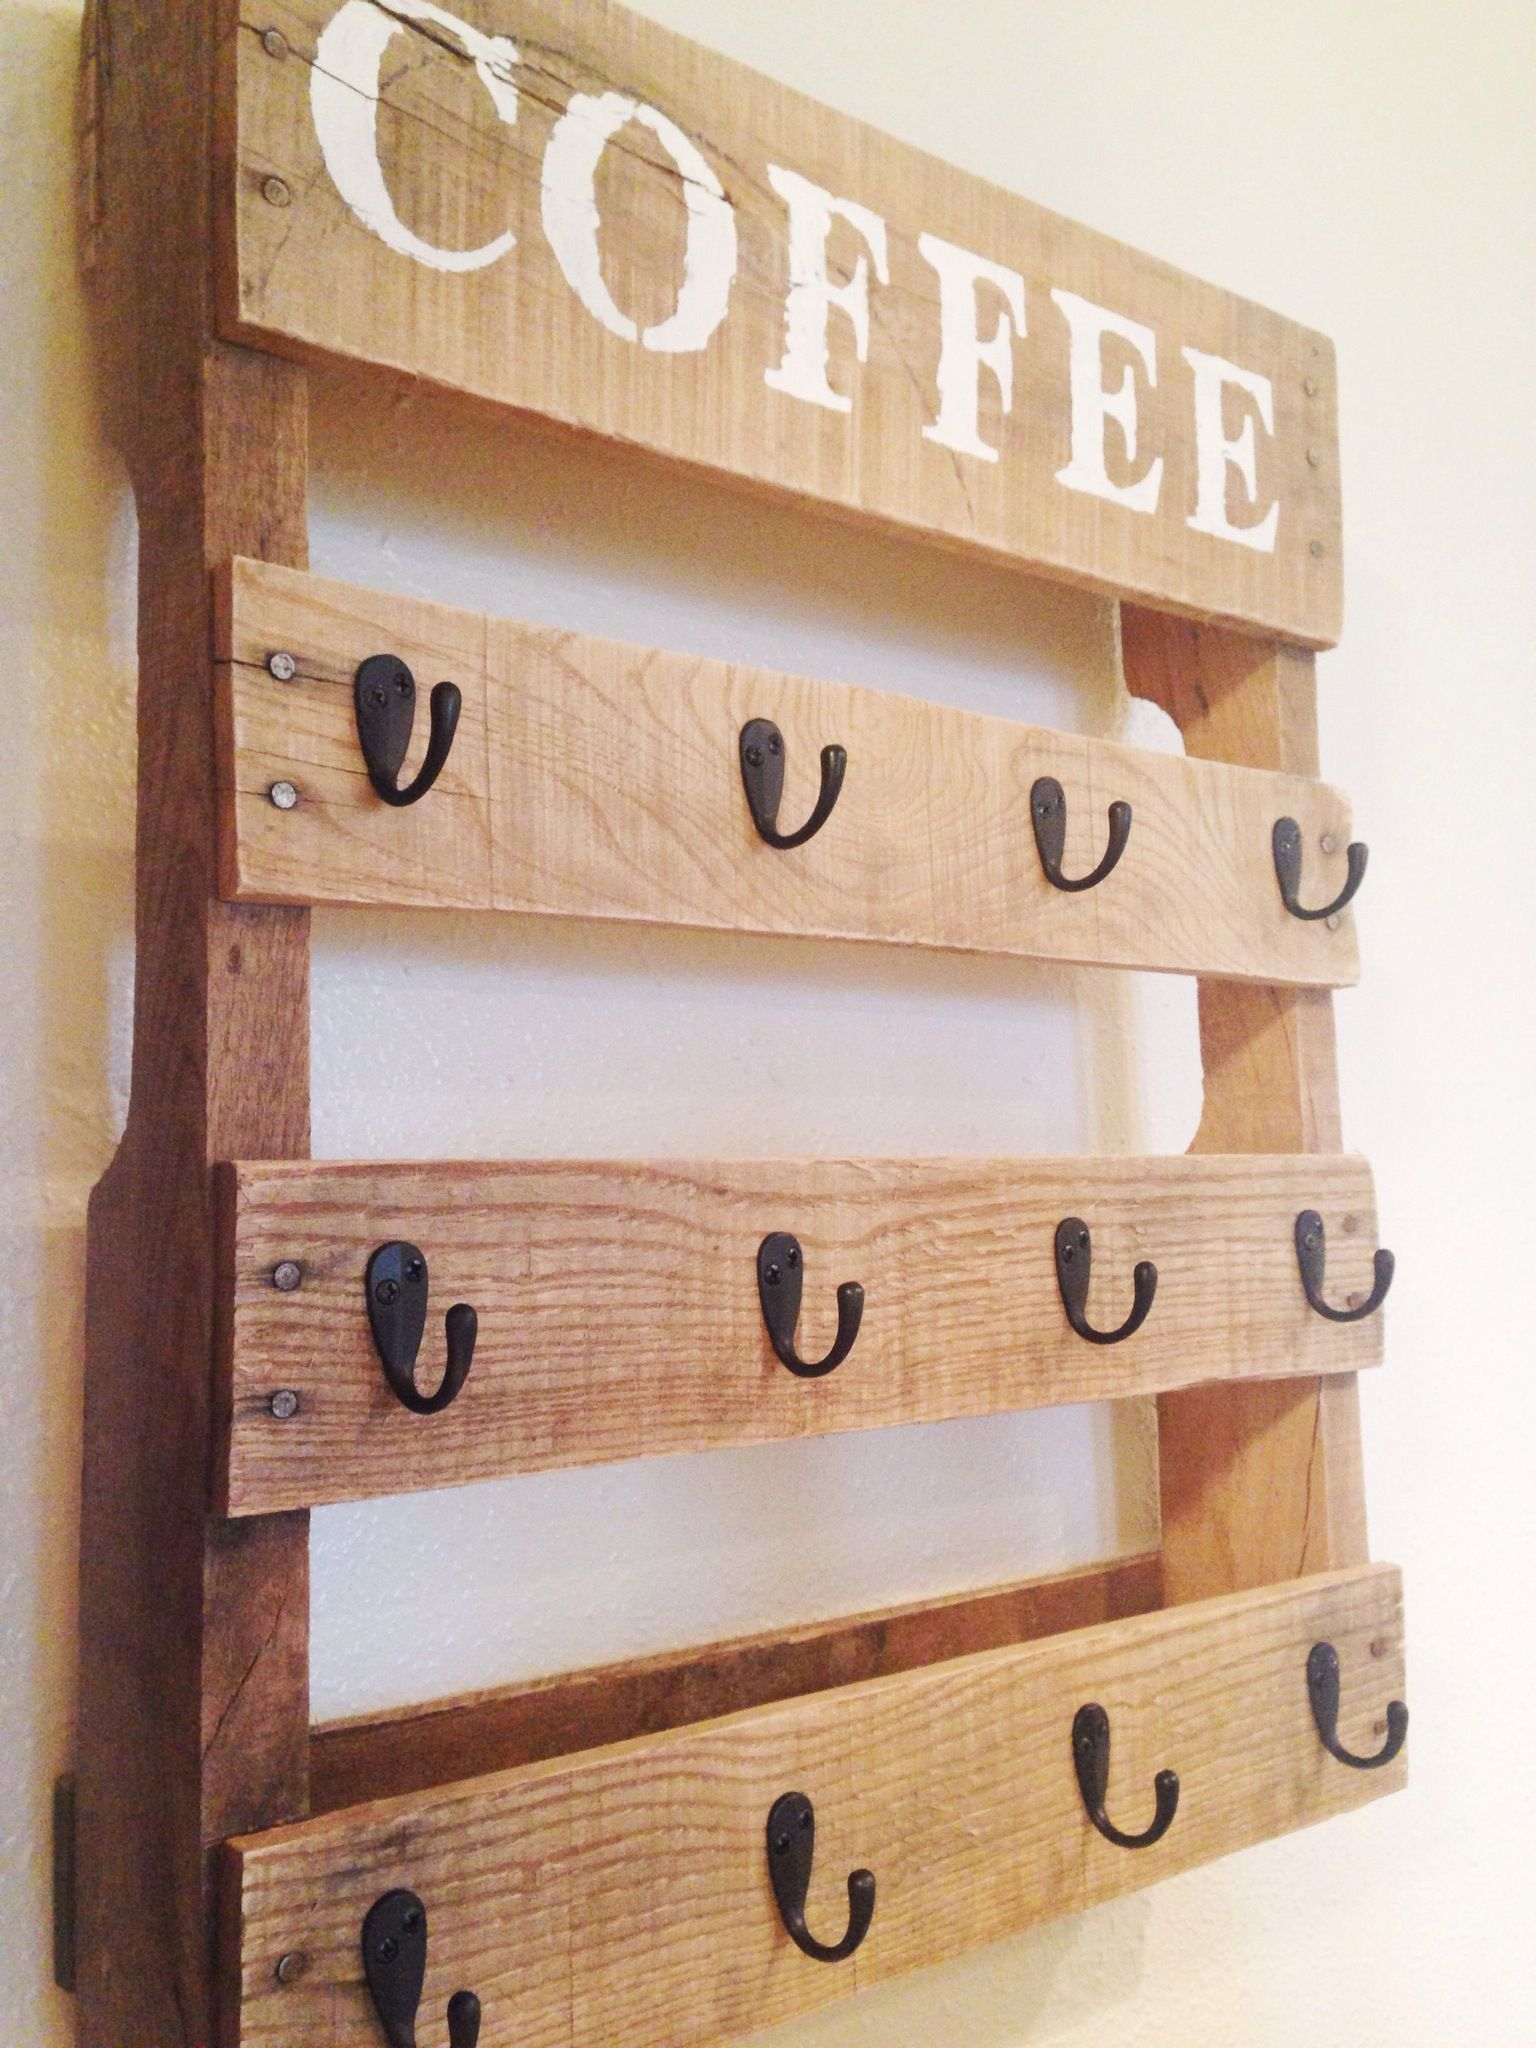 Diy Pallet Coffee Cup Holder Coffee Cups Diy Pallet Diy Diy Coffee Bar